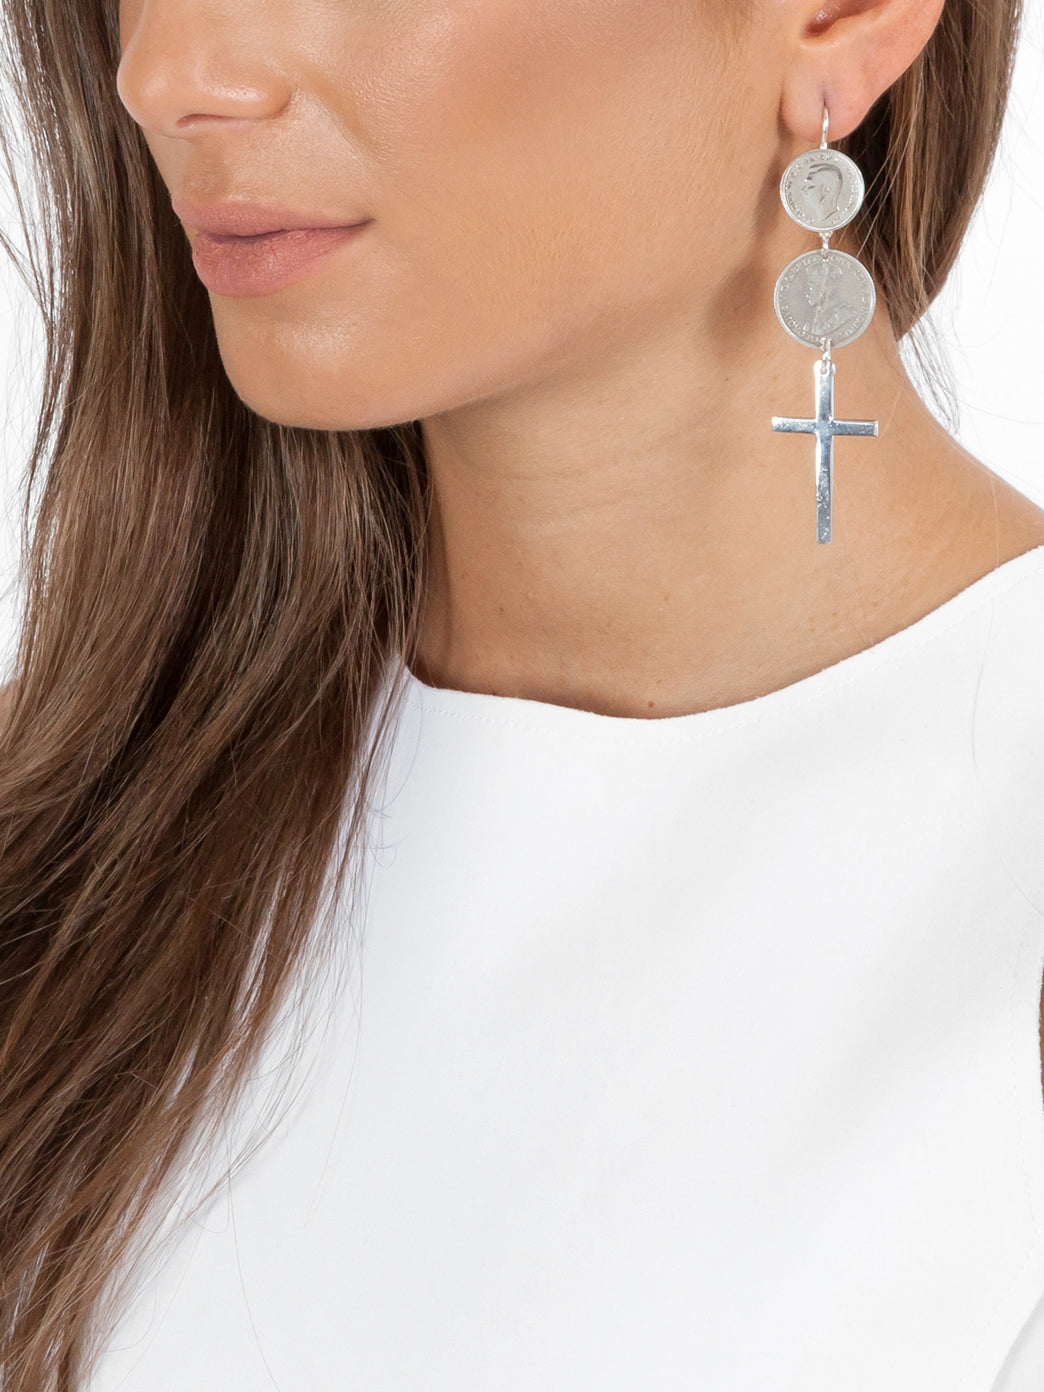 Fiorina Jewellery Double Coin Cross Earrings Model